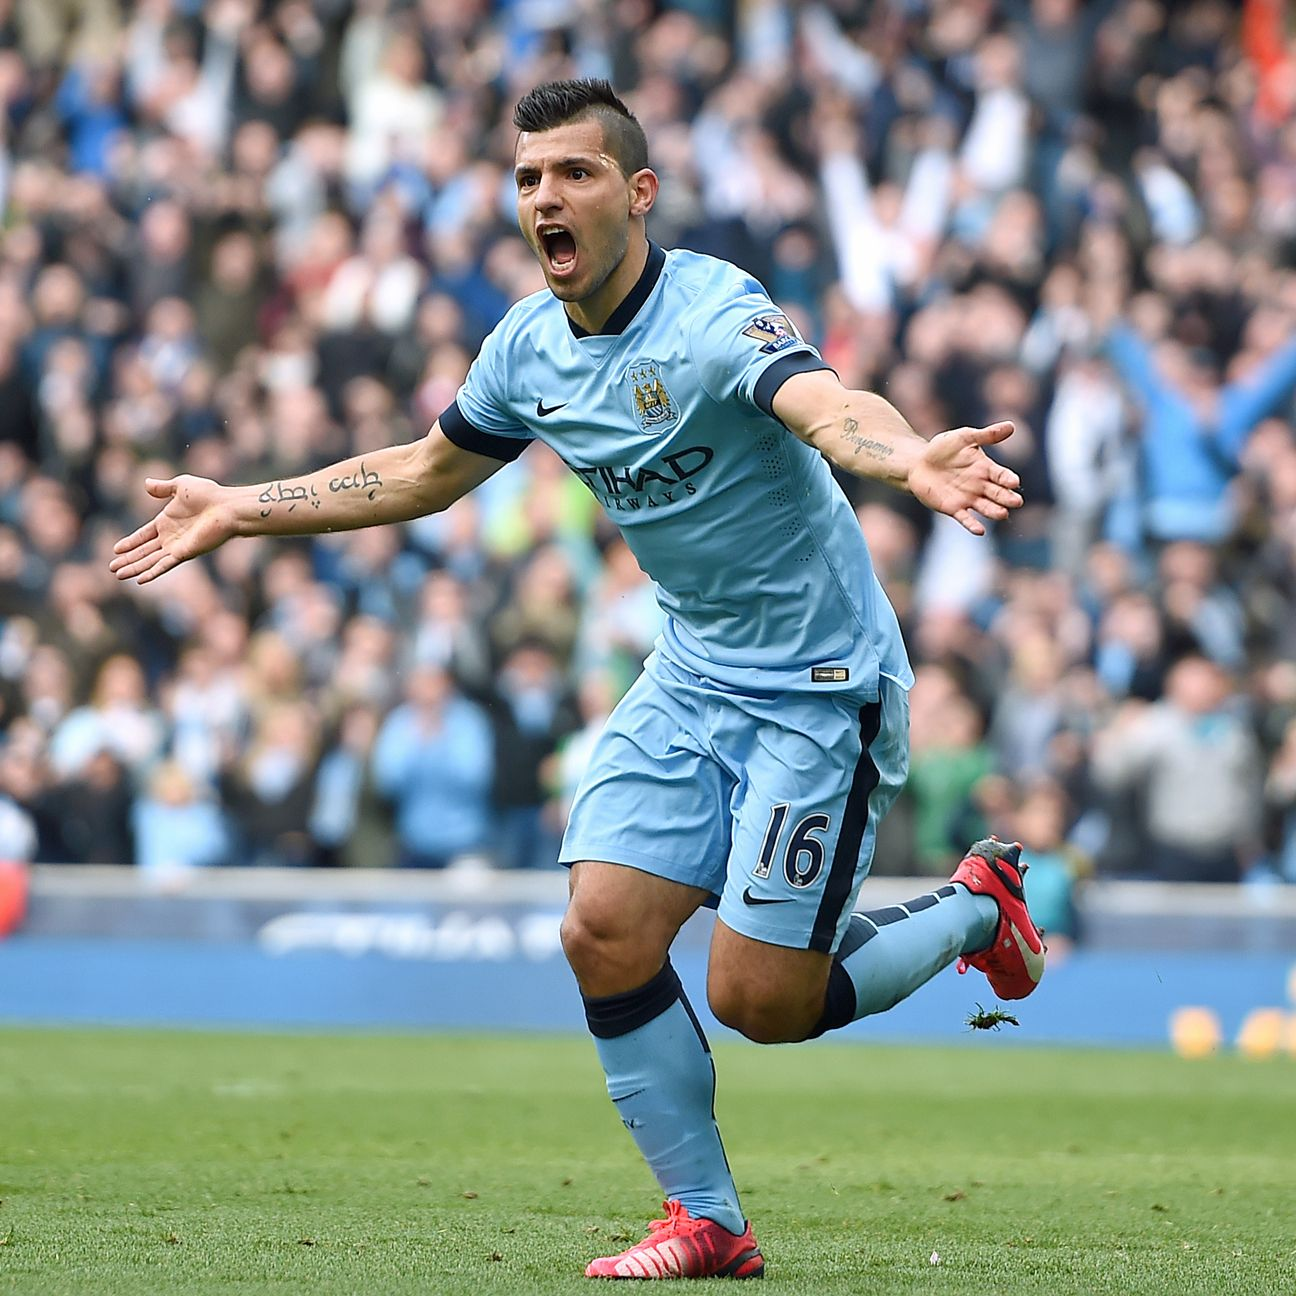 Red-hot Manchester City striker Sergio Aguero is a solid choice for fantasy captain.